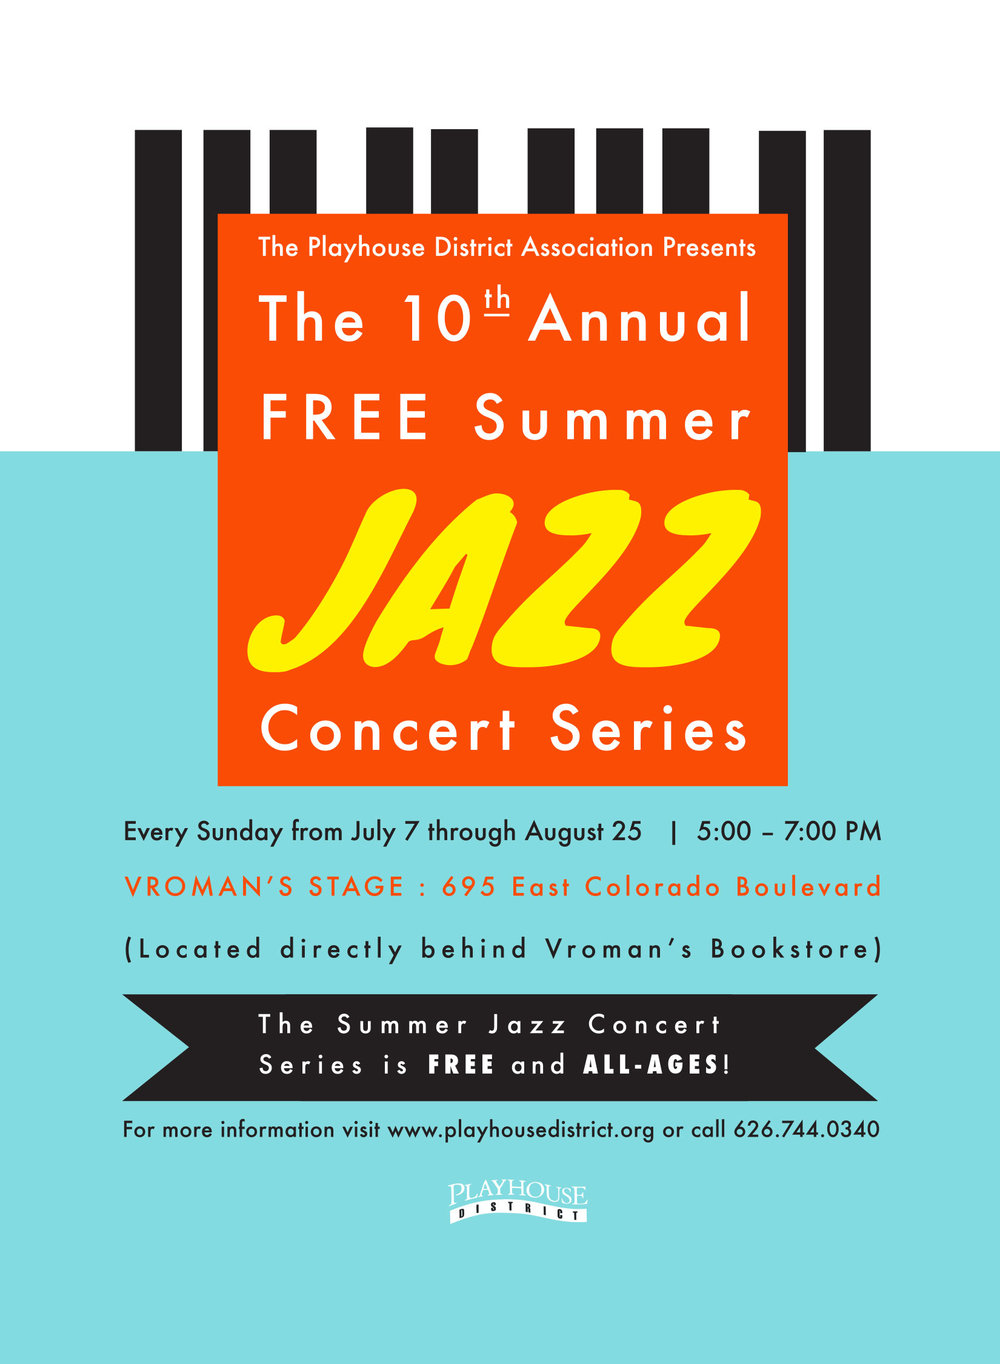 Summer_Jazz_Front_Postcard_Printready.jpg